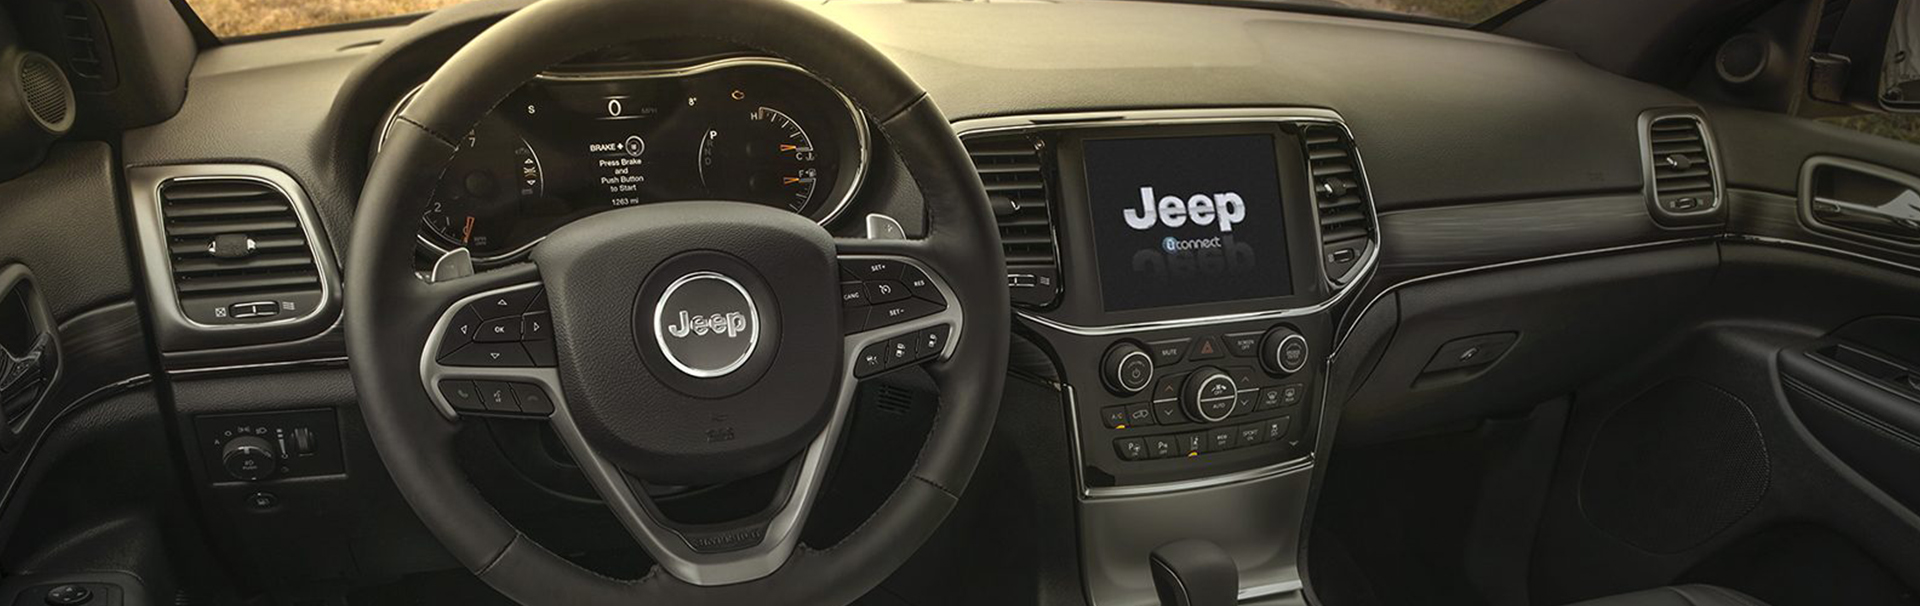 Jeep® Grand Cherokee - Technologie - Facilitez-vous la vie par un simple bouton